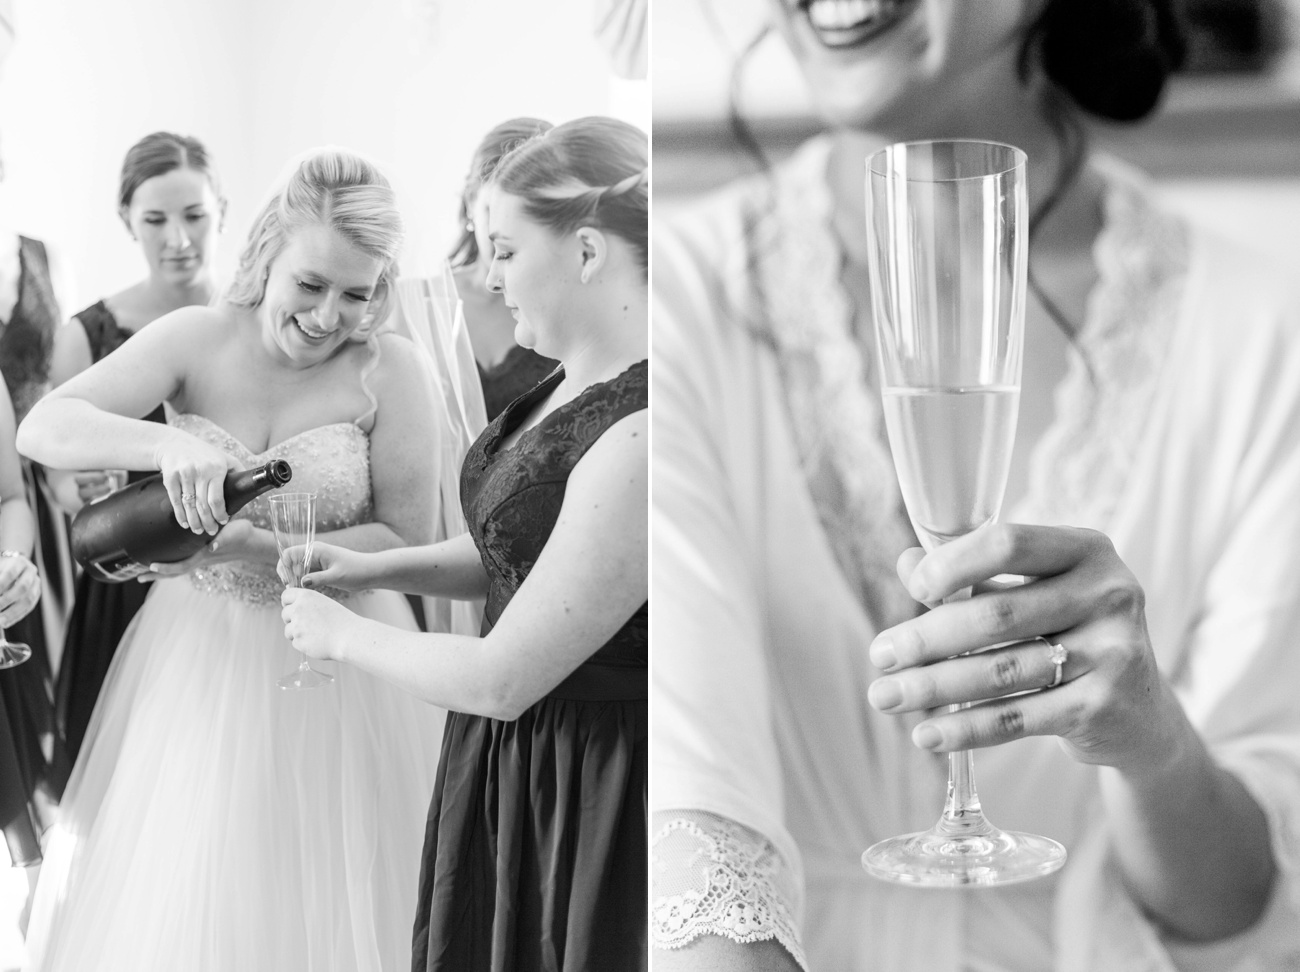 View More: http://jessgreenphotography.pass.us/laura-adam-wedding